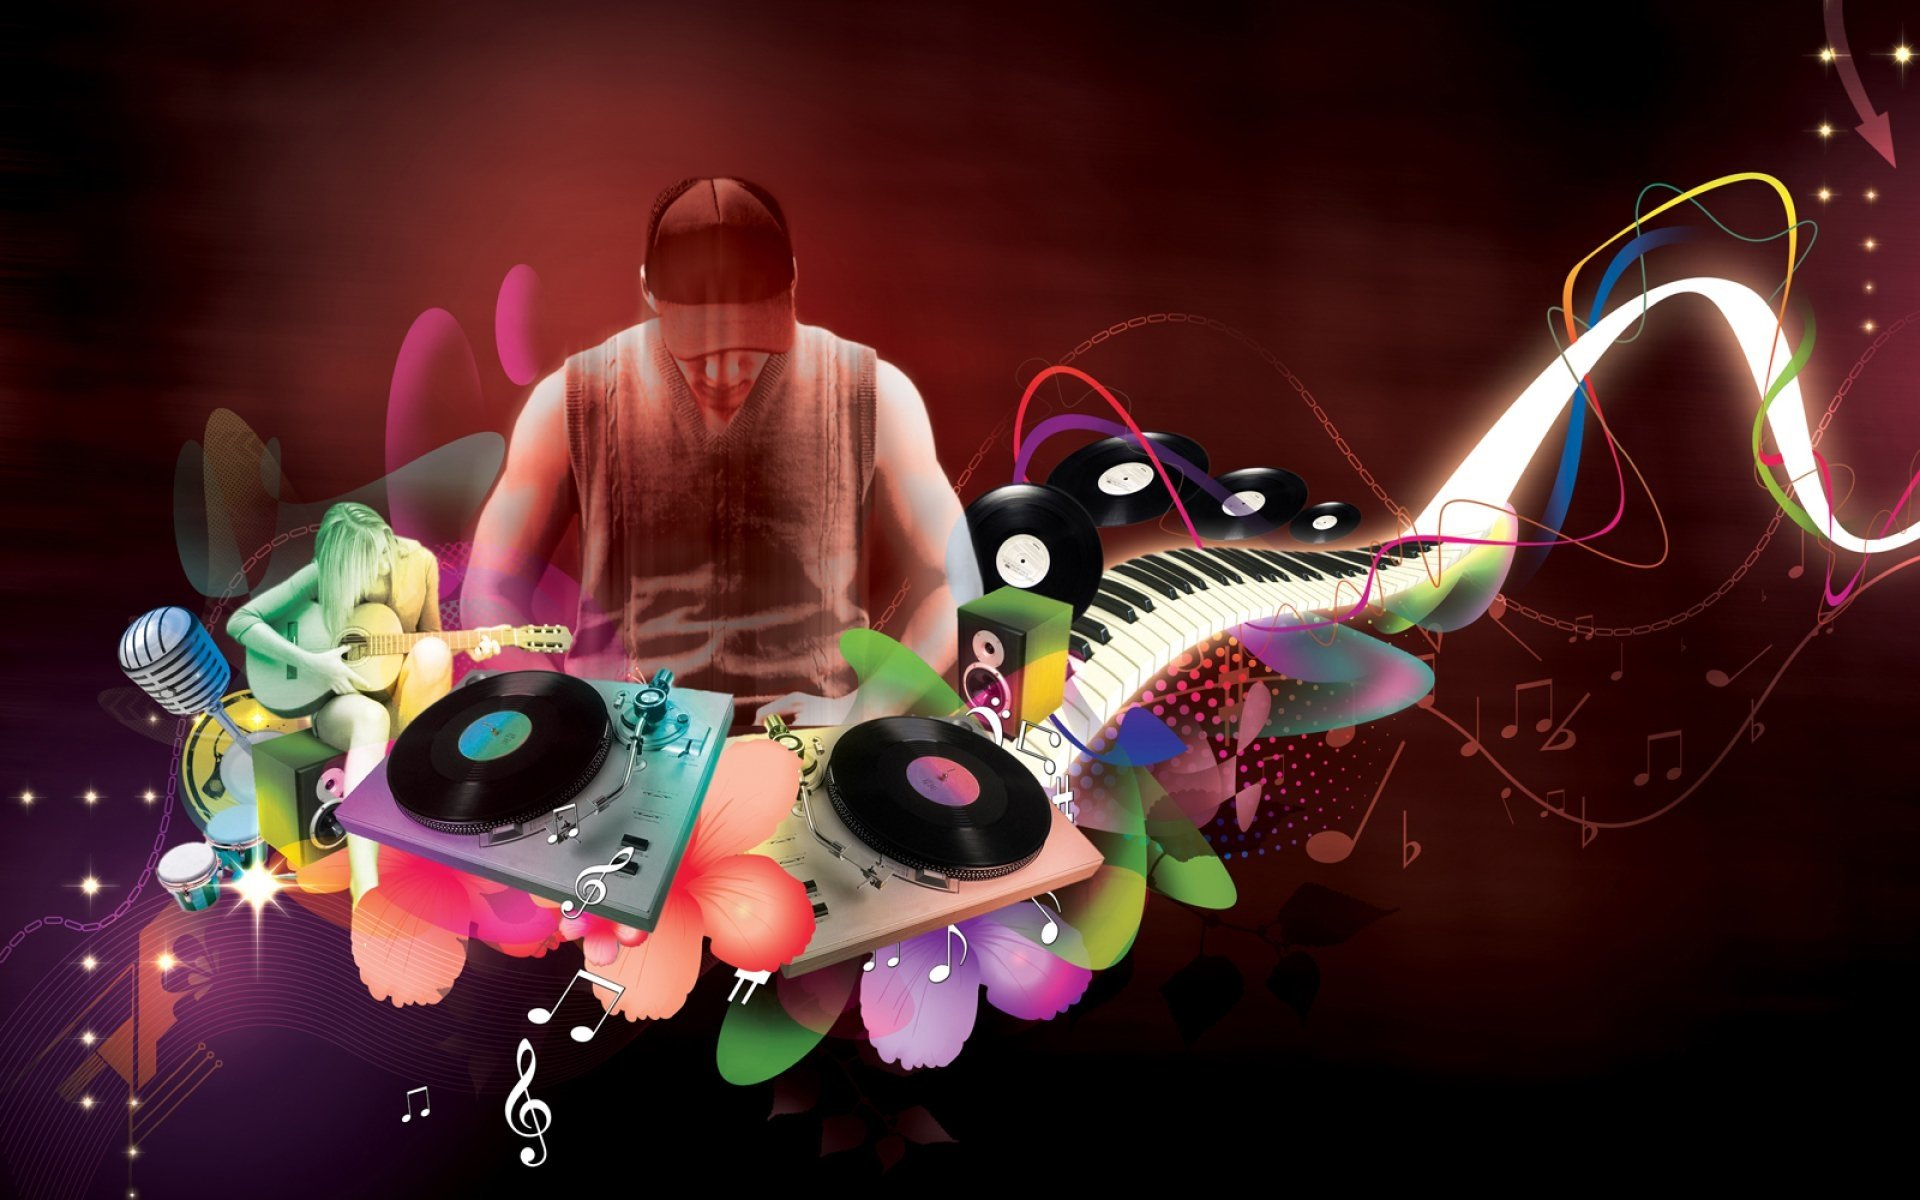 Music - DJ  Electronic Music Wallpaper